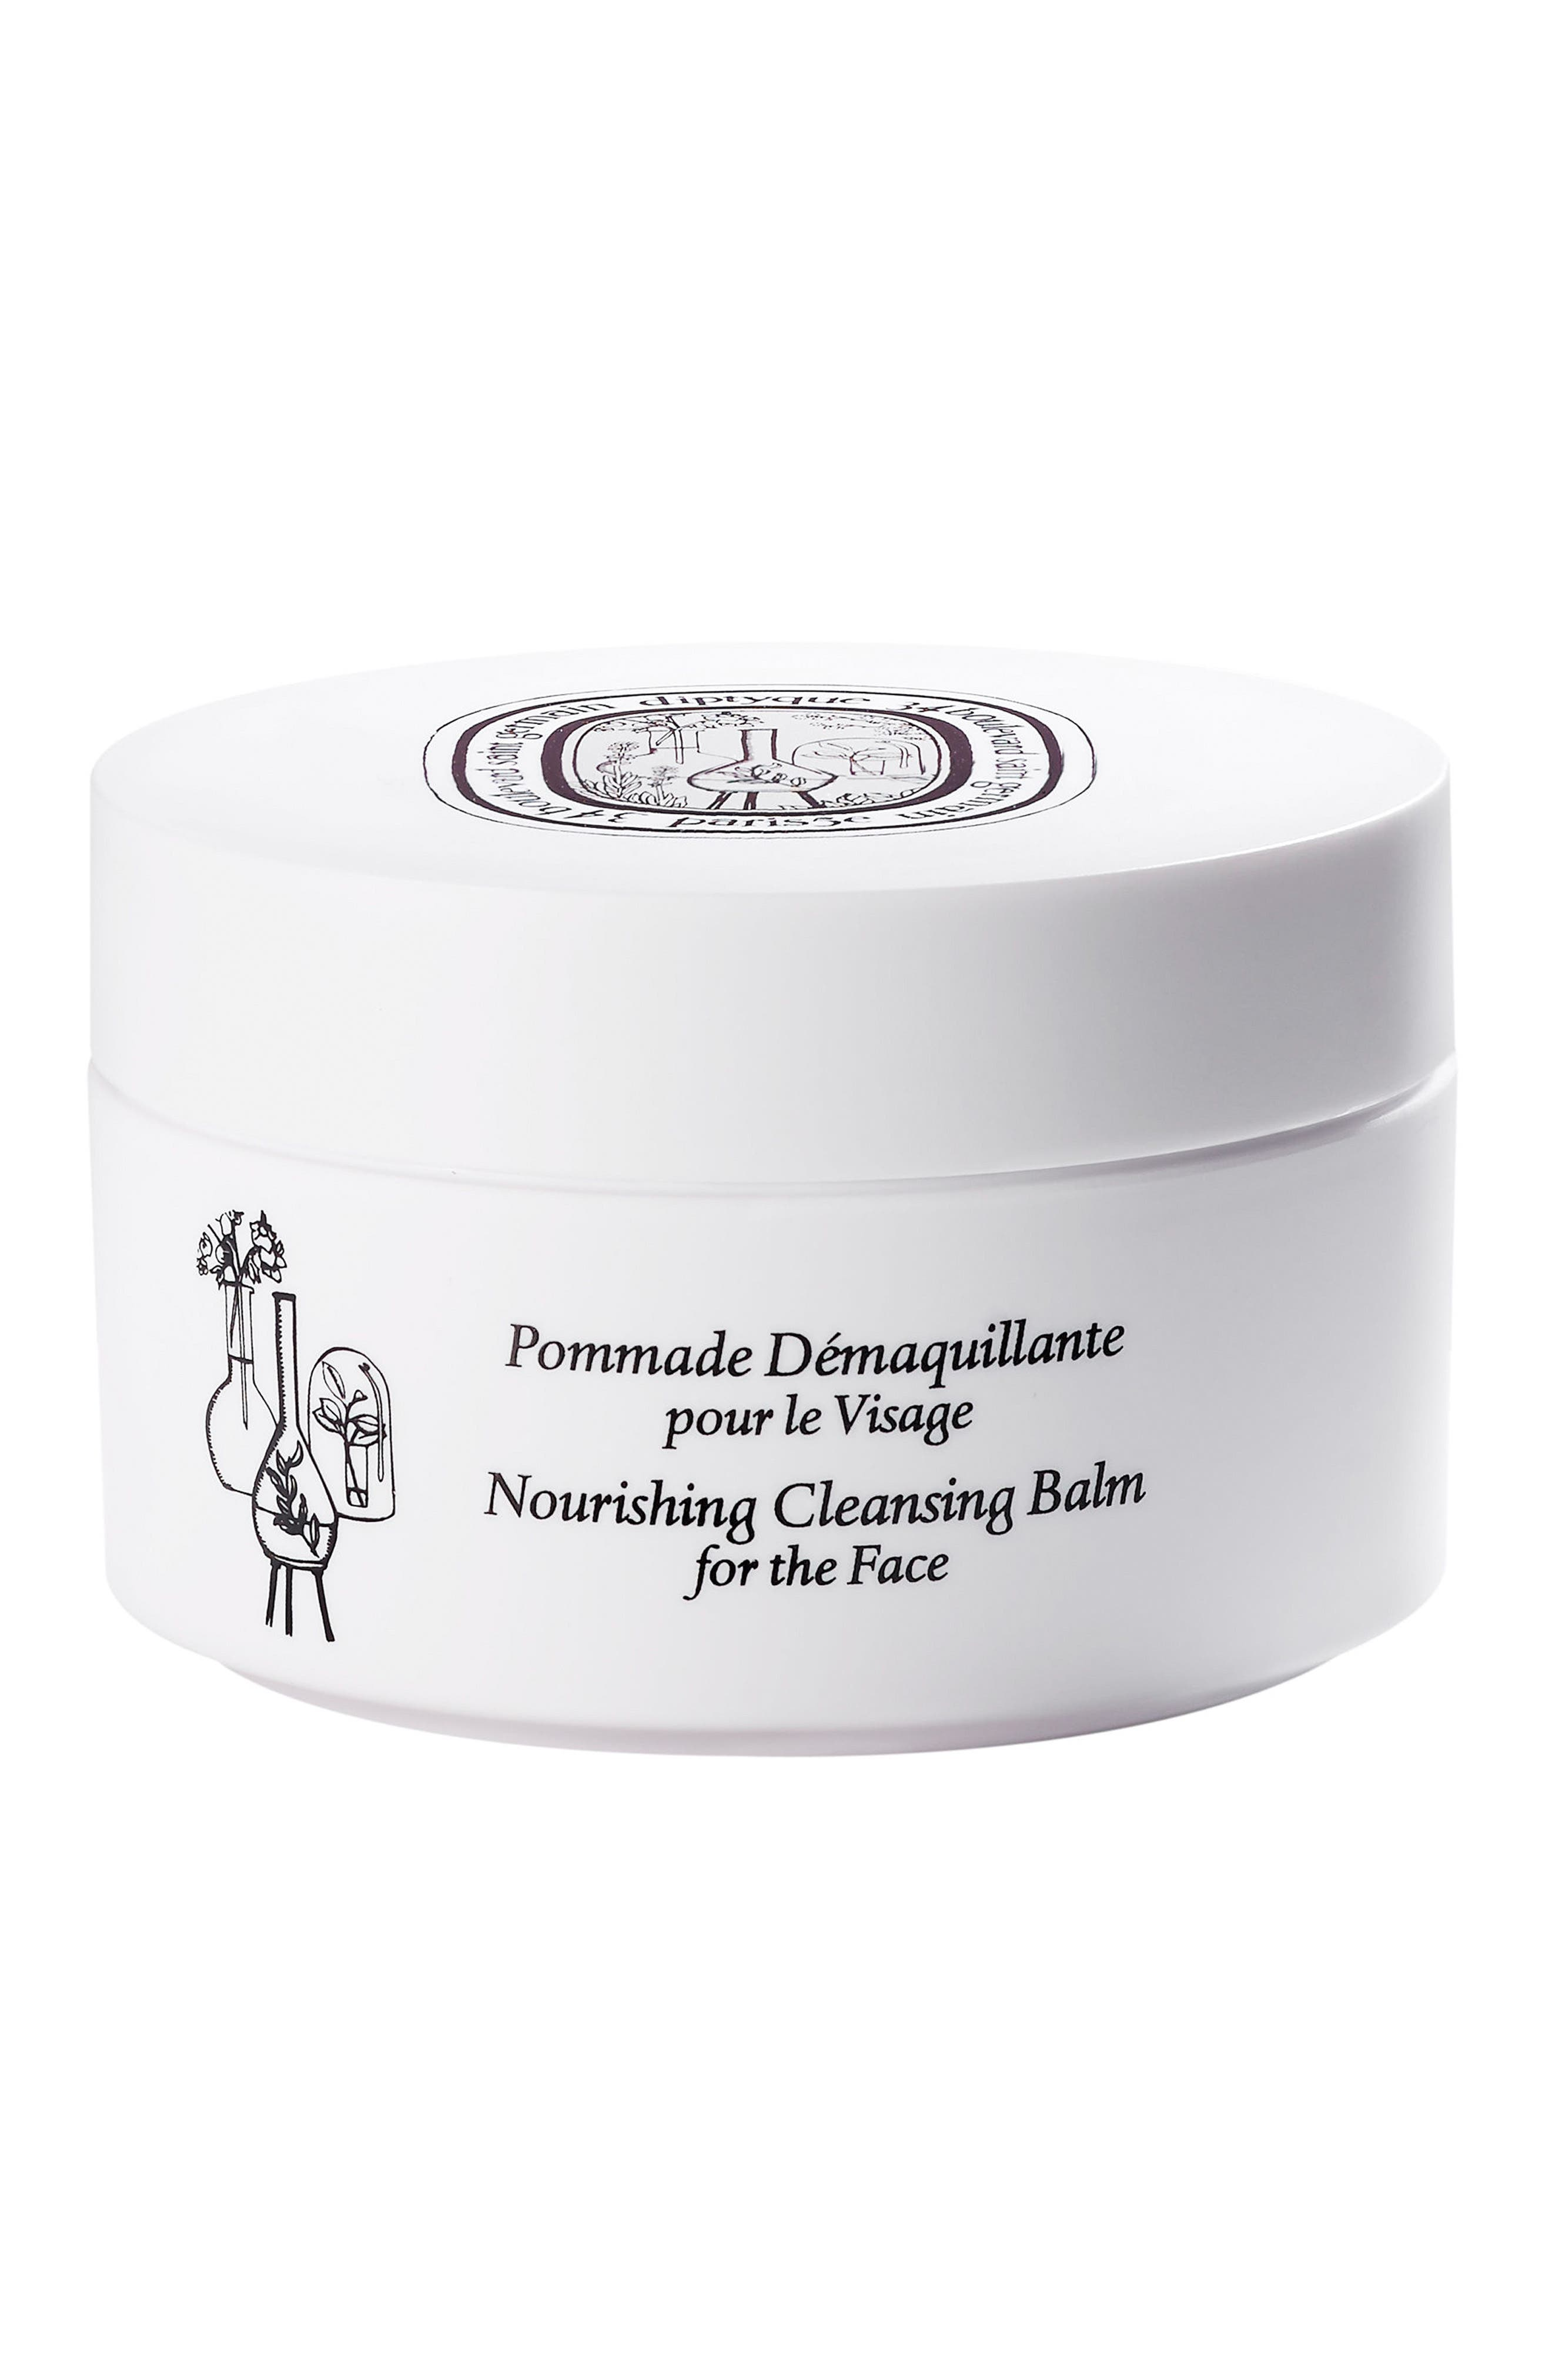 DIPTYQUE, Nourishing Cleansing Balm for the Face, Main thumbnail 1, color, NO COLOR